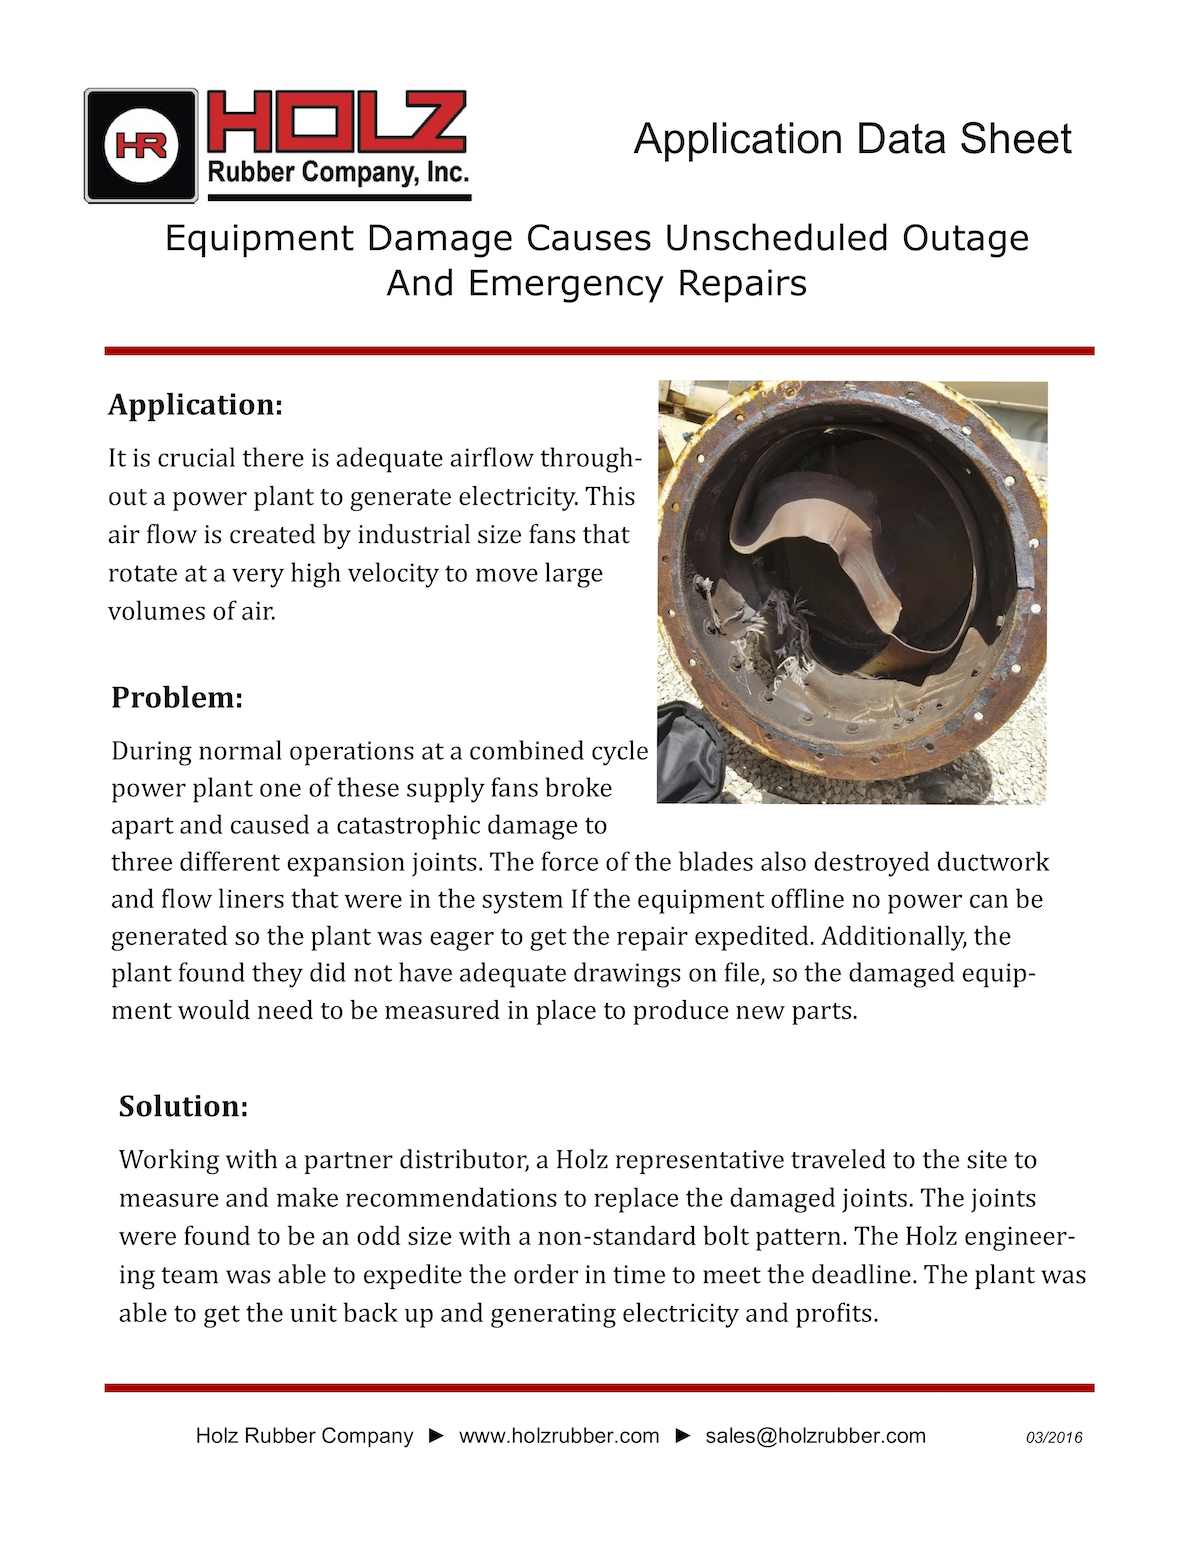 Equipment Damage Causes Unscheduled Outage And Emergency Repairs